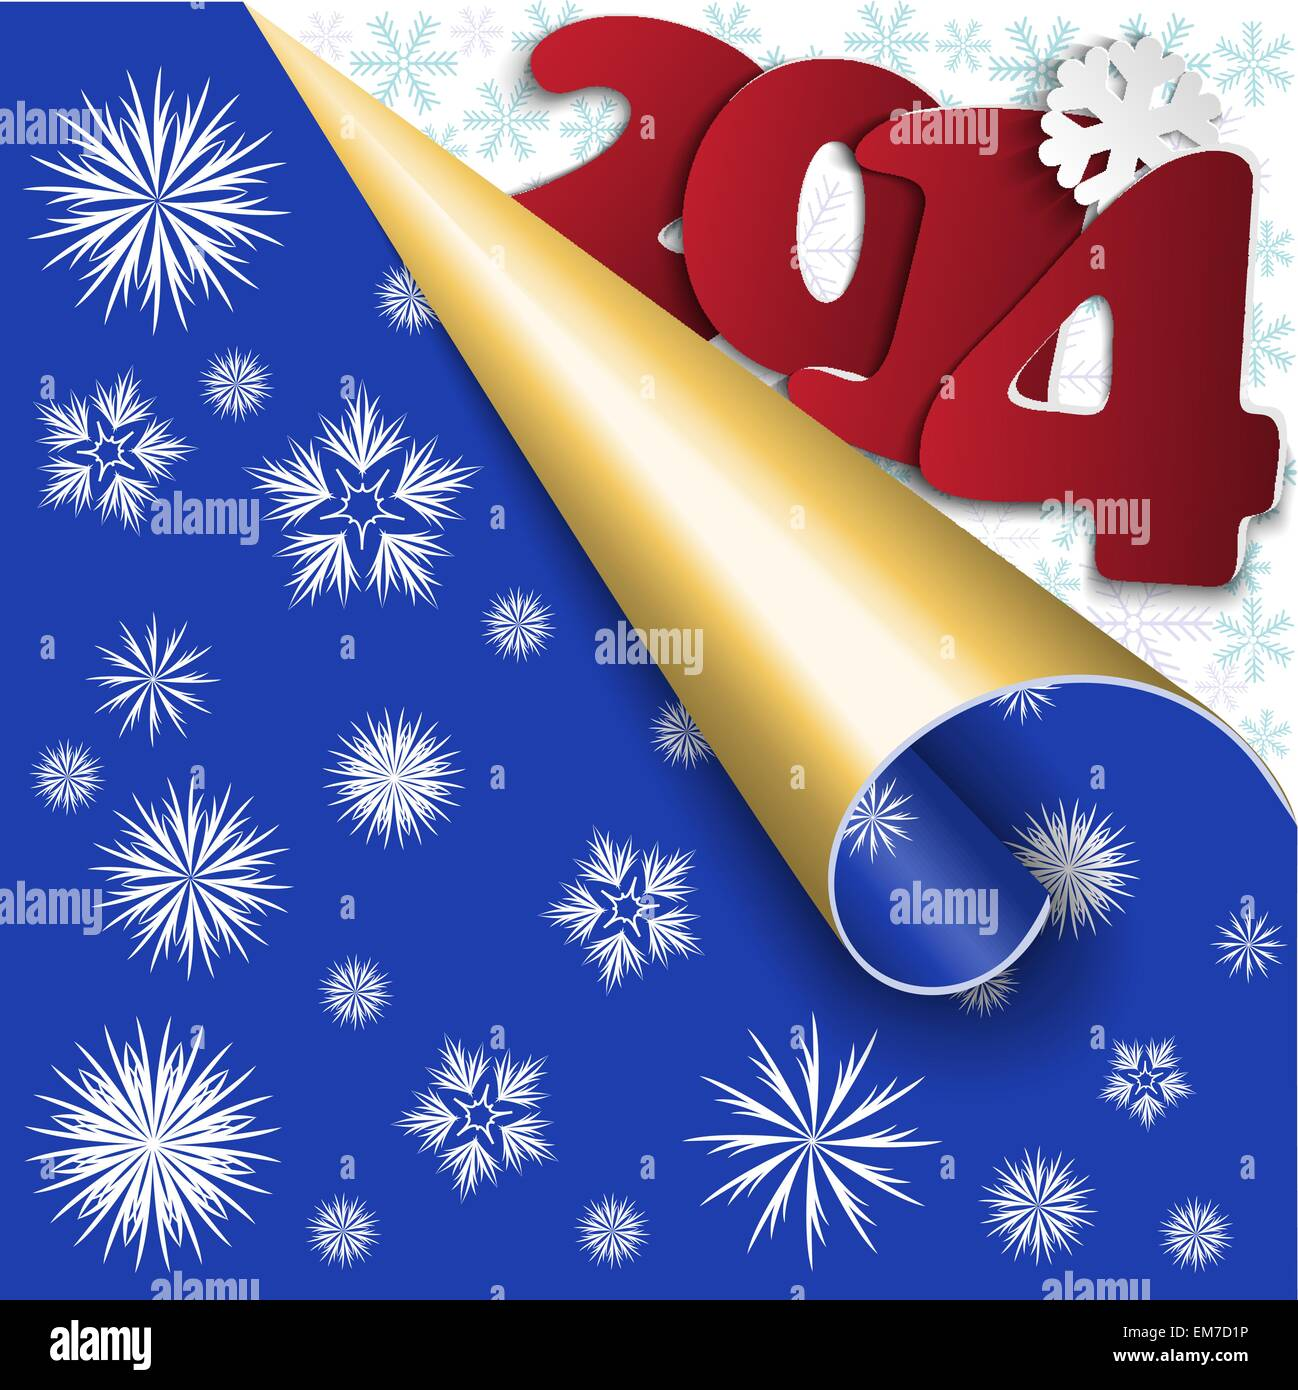 Blue New Year's background - Stock Image